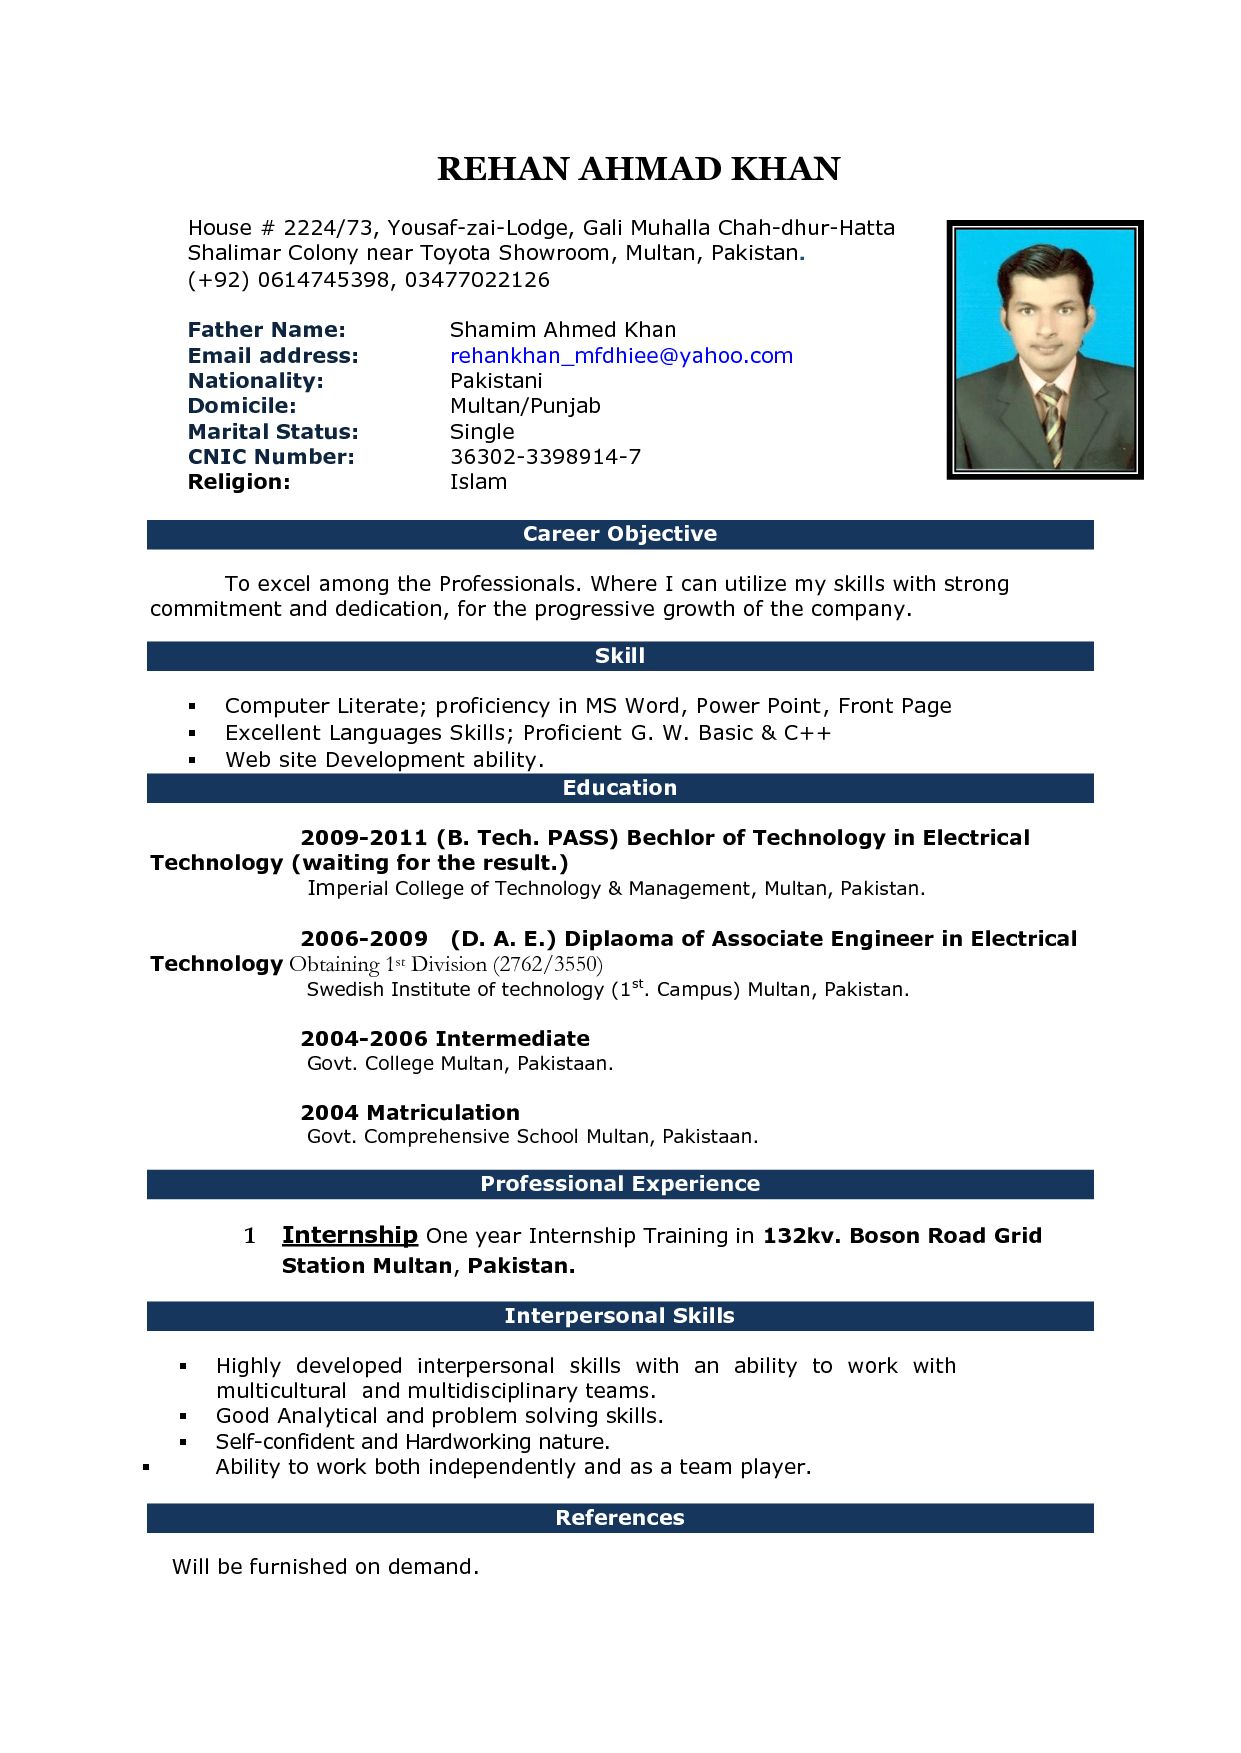 Resume Layout Word Free Download Cv Format In Ms Word Fieldstationco Microsoft Office